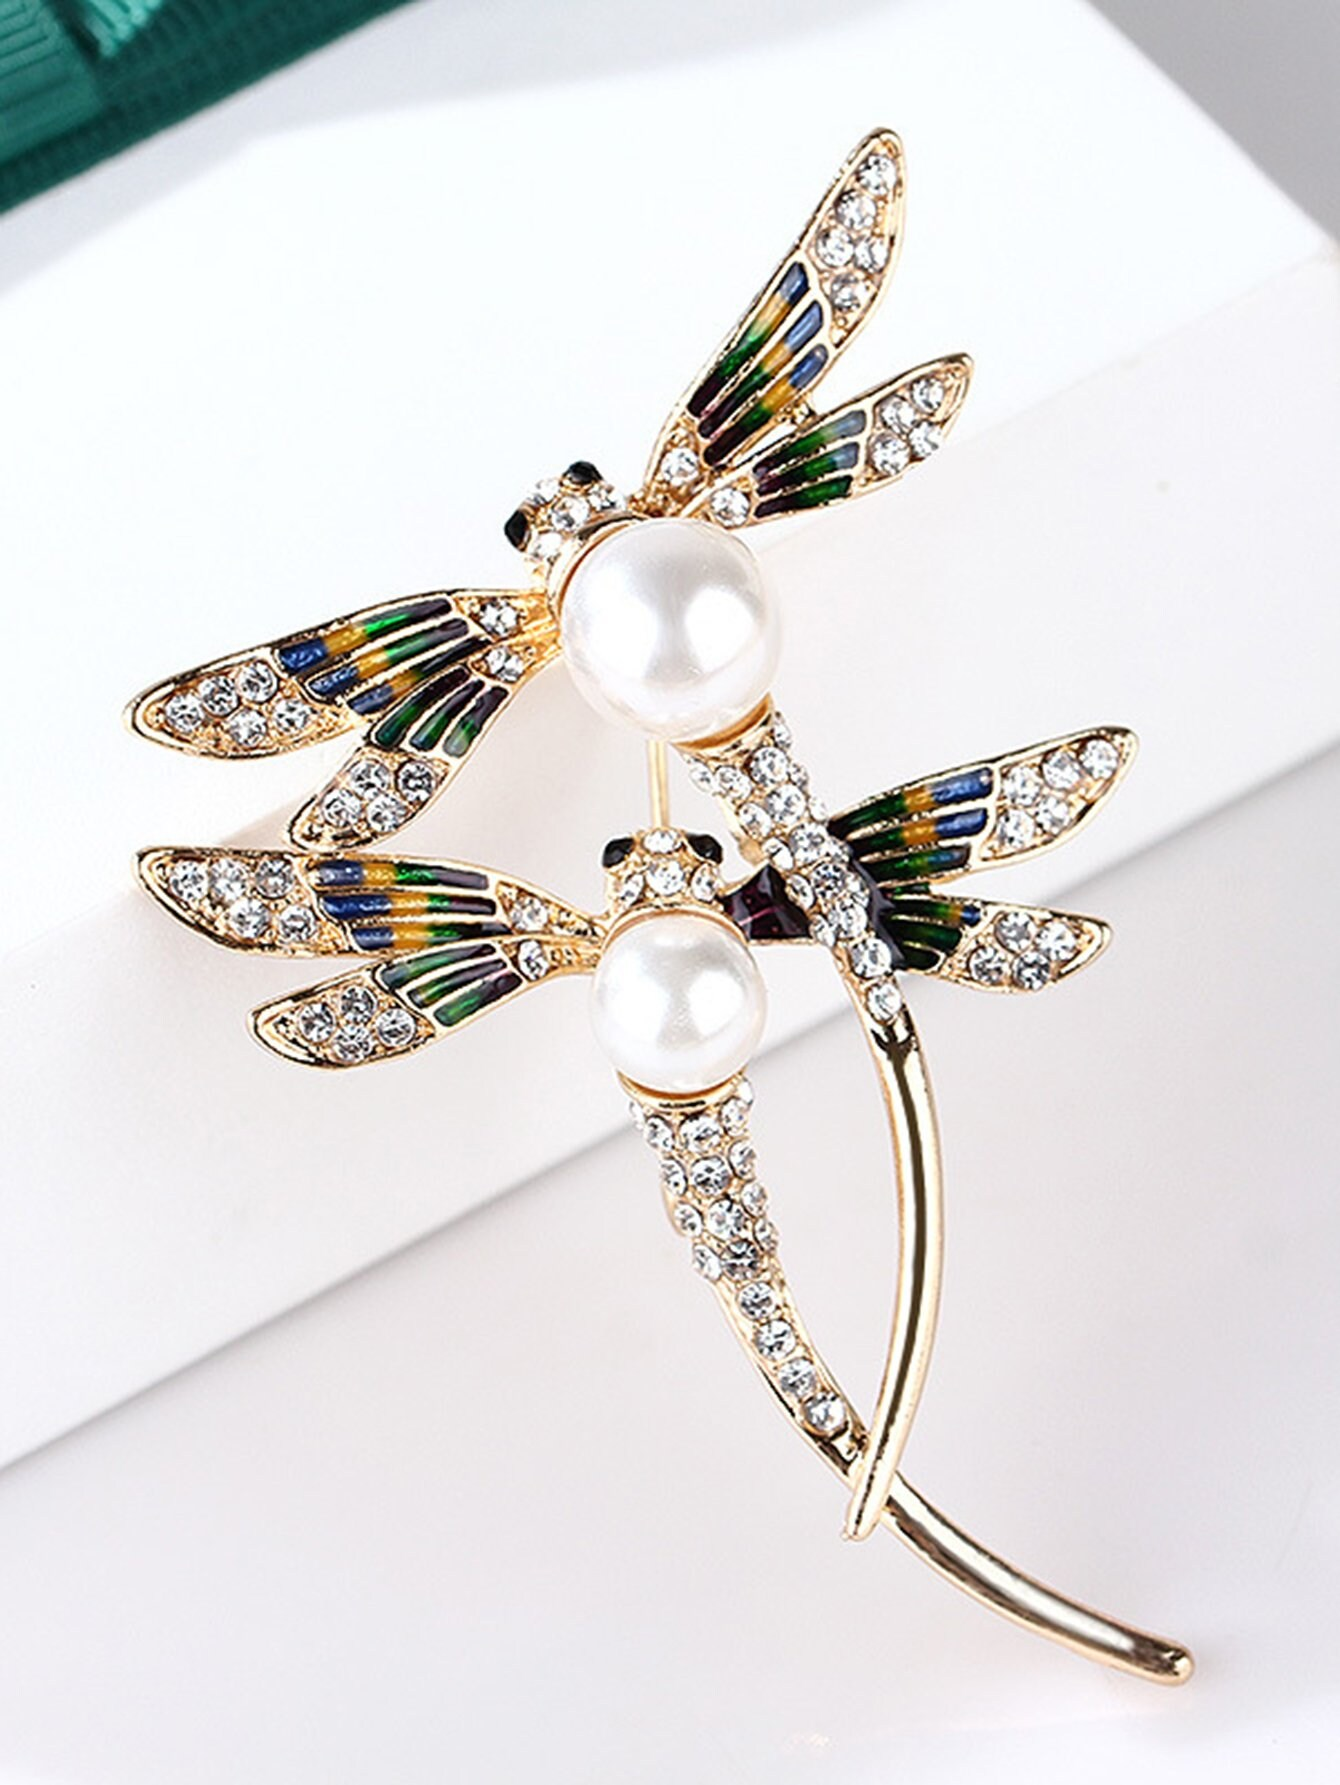 Double Dragonfly Design Brooch